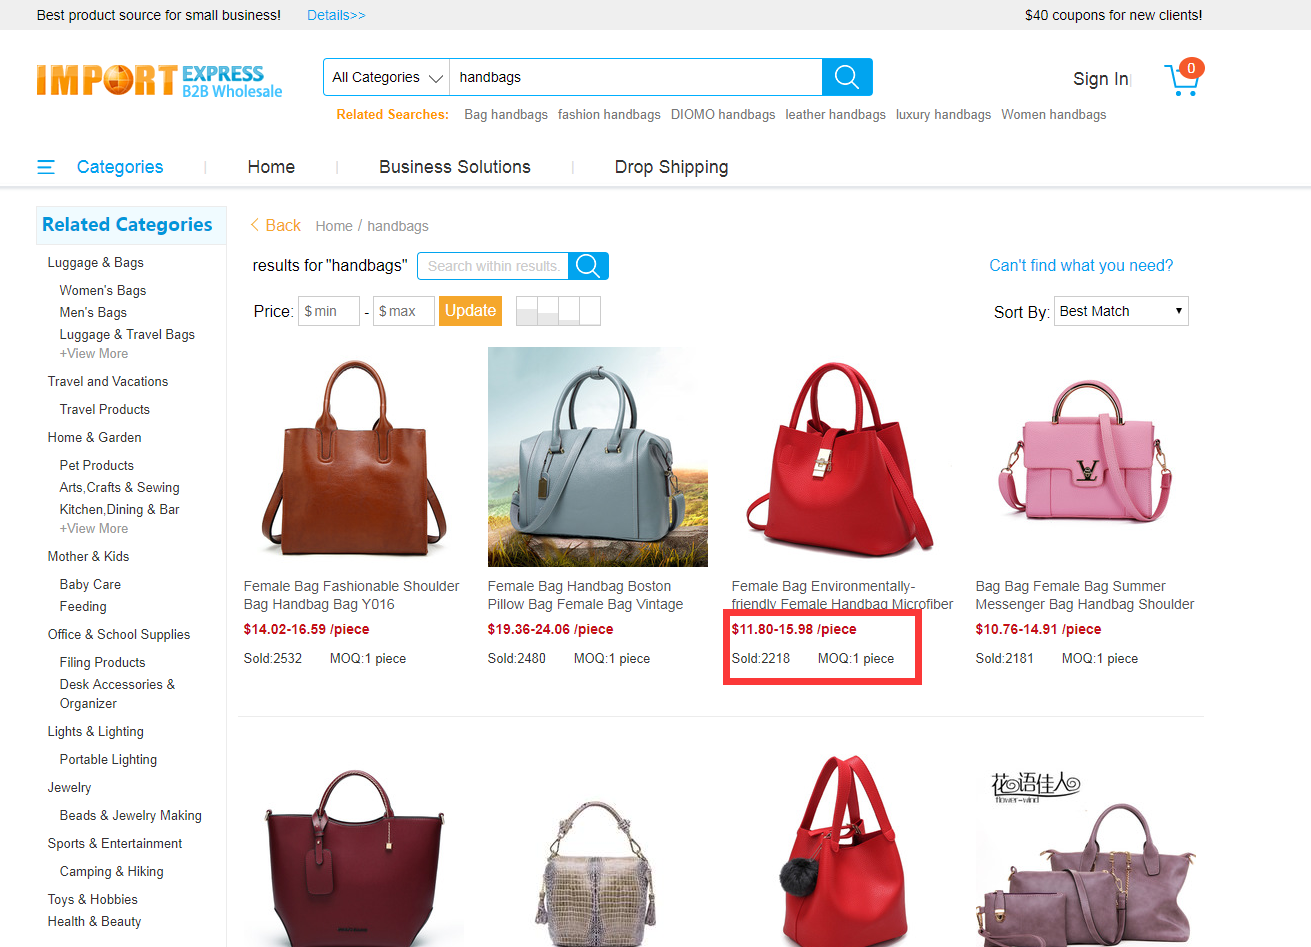 7e96724a46 Where can I wholesale the handbags for small order in China  - Quora